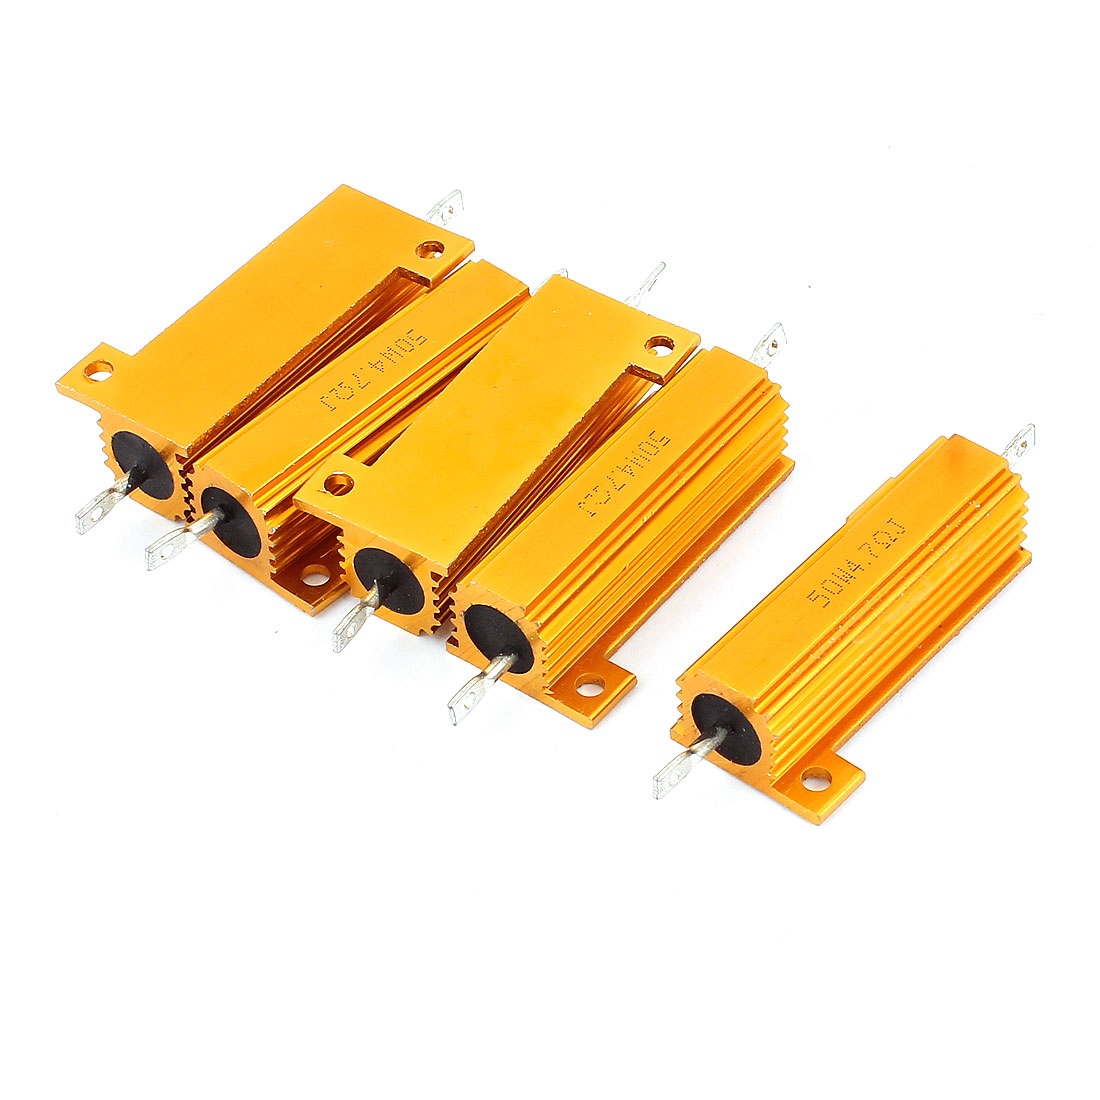 5 Pcs 4.7 Ohm 50W Aluminium Housing Chassis Mount Wirewound Power Resistors Gold Tone